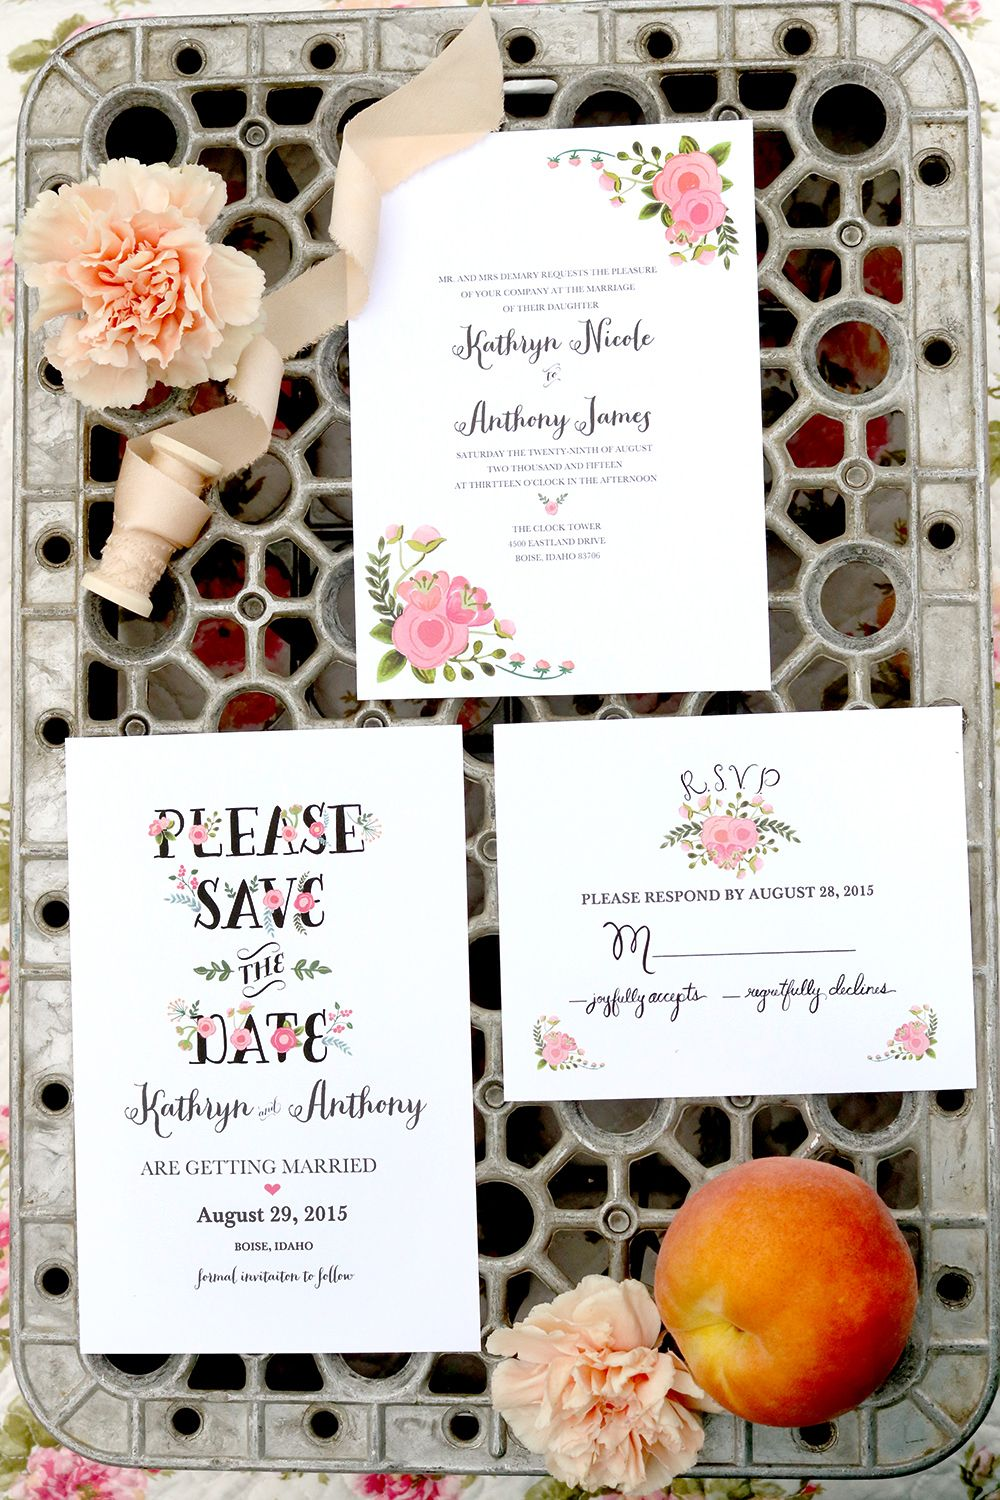 Romantic Blush Free Wedding Invitation Set | Wedding, Wedding ...